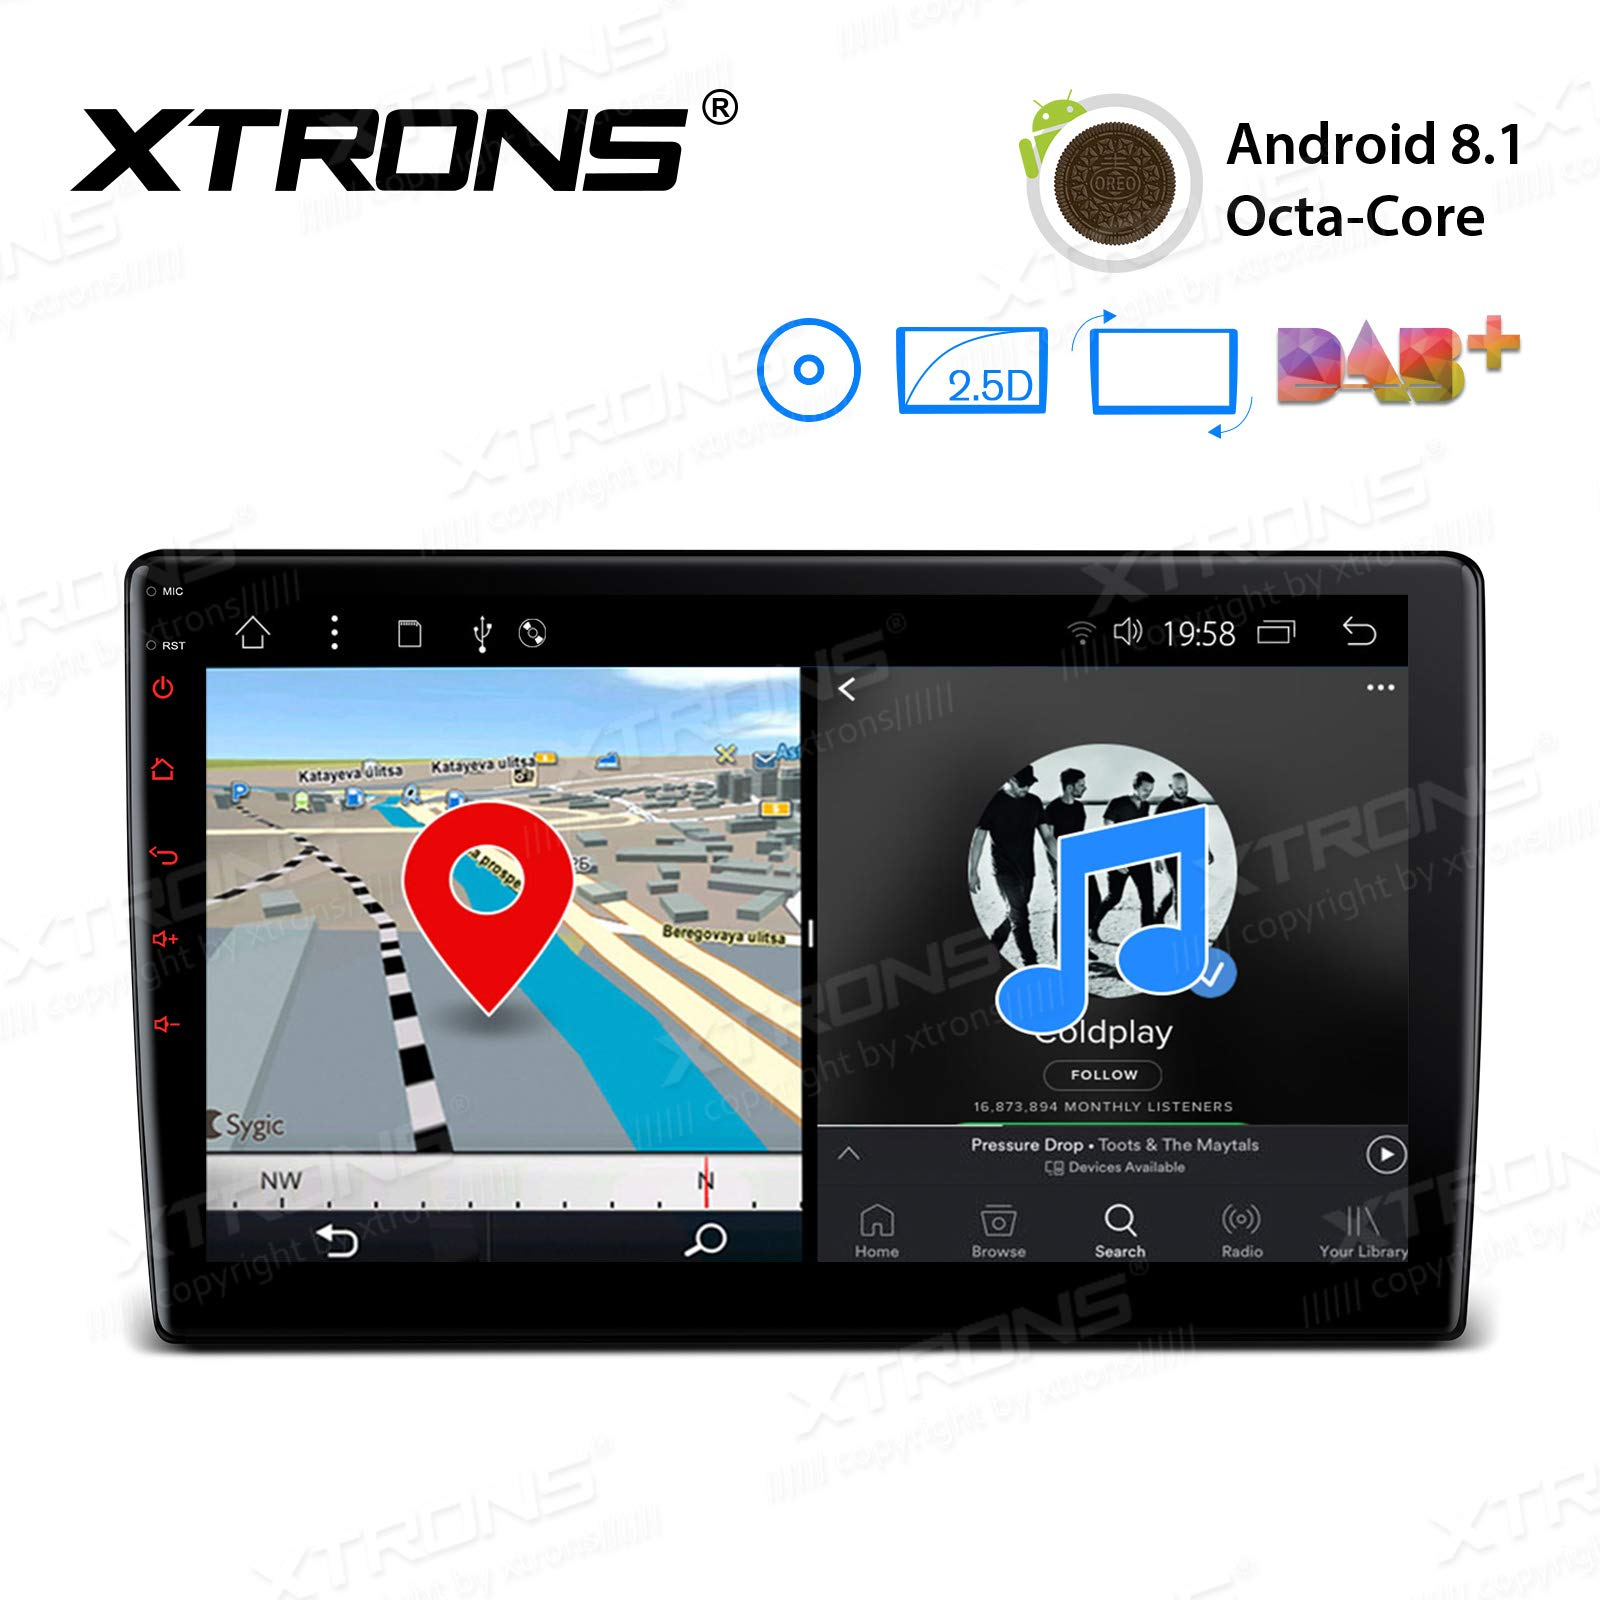 XTRONS Android 8.1 Oreo Octa Core 10.1 Inch 2GB DDR3 RAM 16GB ROM Rotatable Face Panel Car Stereo DVD Radio GPS 4K Video WiFi OBD2 Screen Mirroring DVR 2 DIN